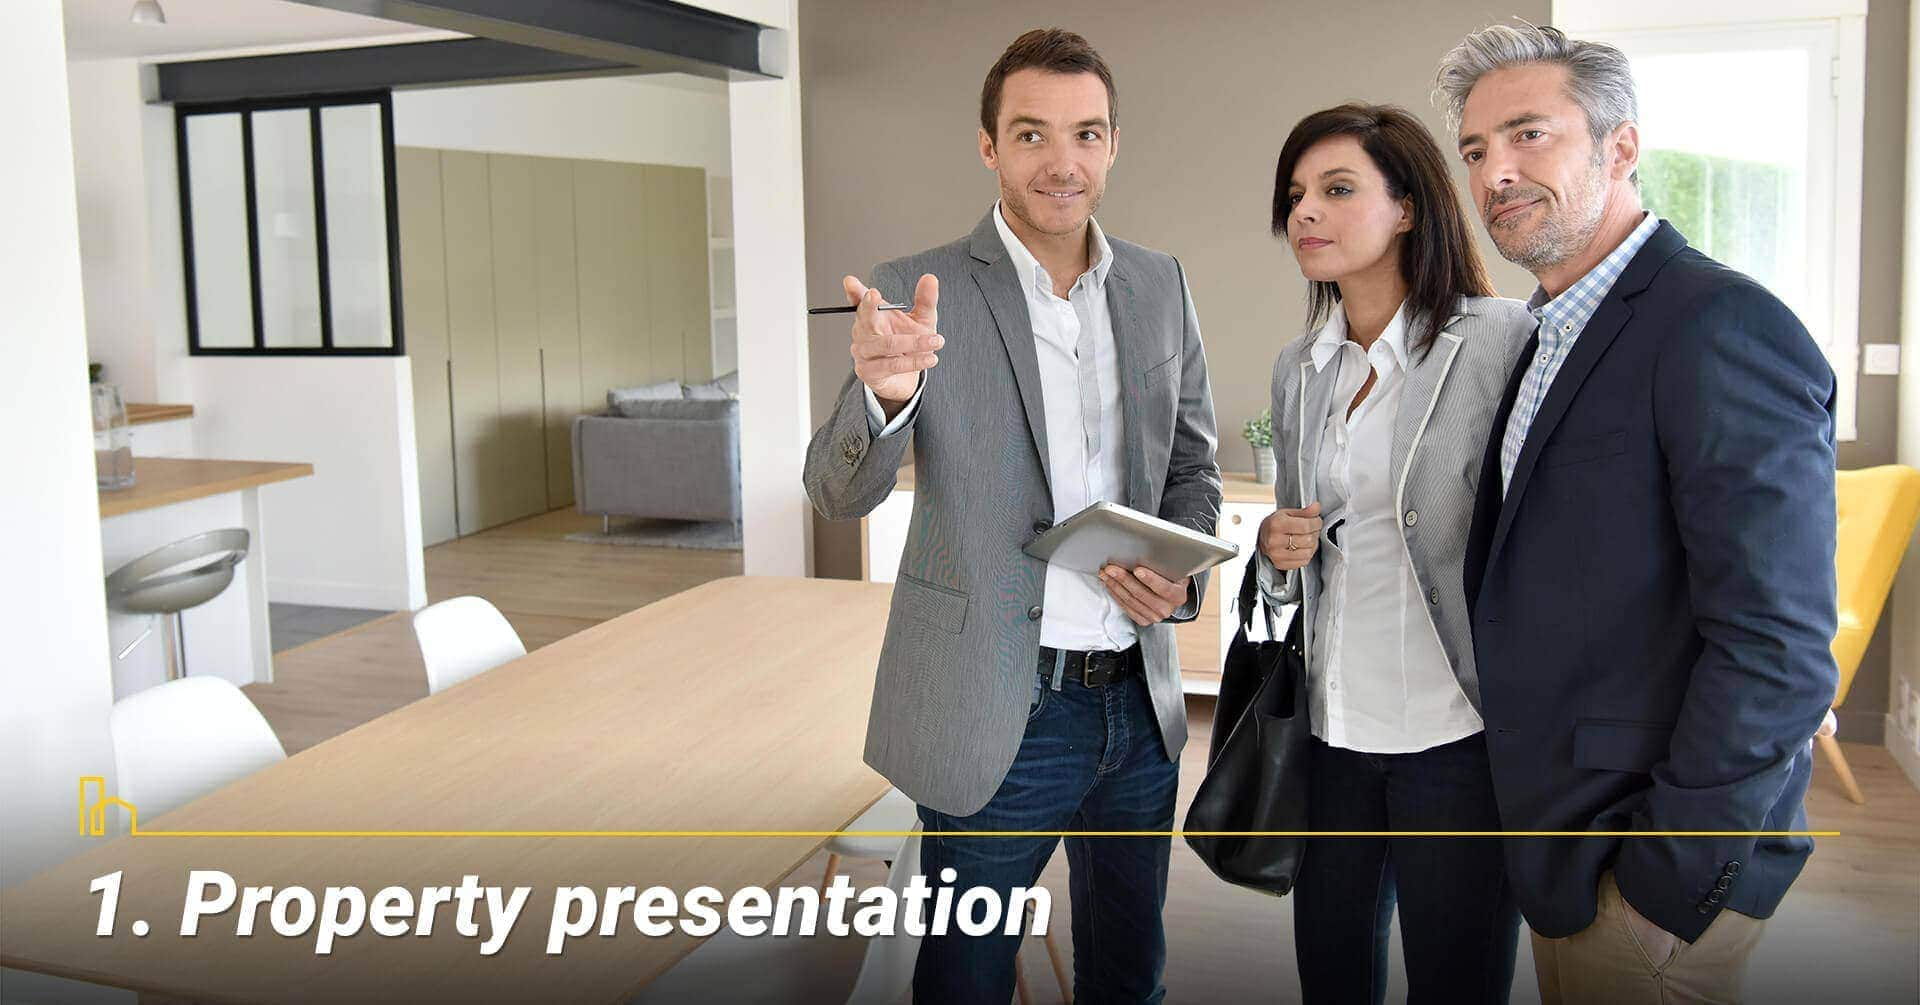 Property presentation, show off your property